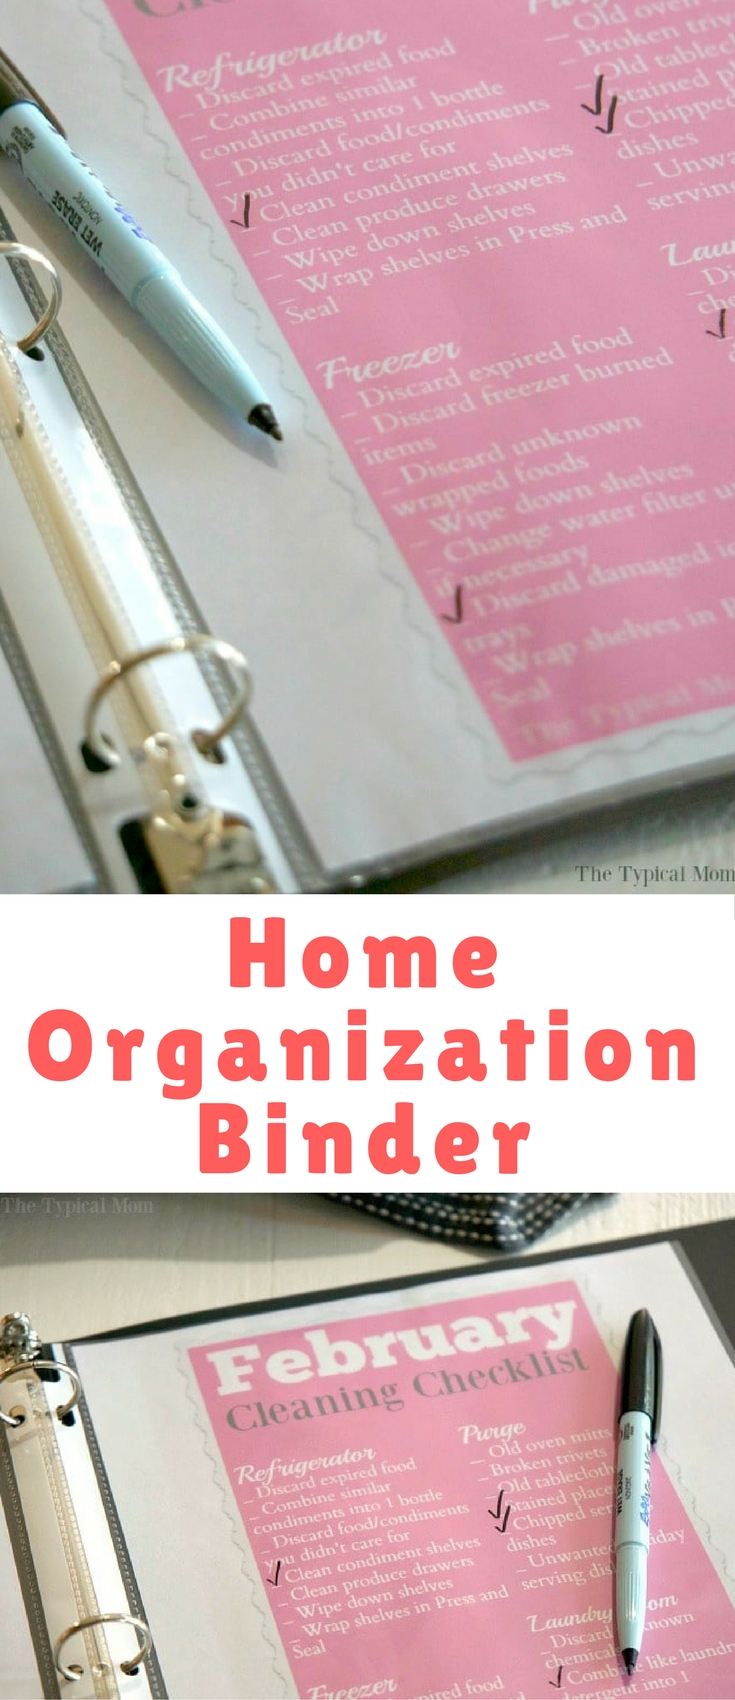 I created a home organization binder to keep them in and check off what I've done so I knew what was left to do that month. Wipe it off at the end of the month using wet erase markers and it would be ready for next year when that month arrived again. Here's how easy it was to create and what you'll need to make one yourself!